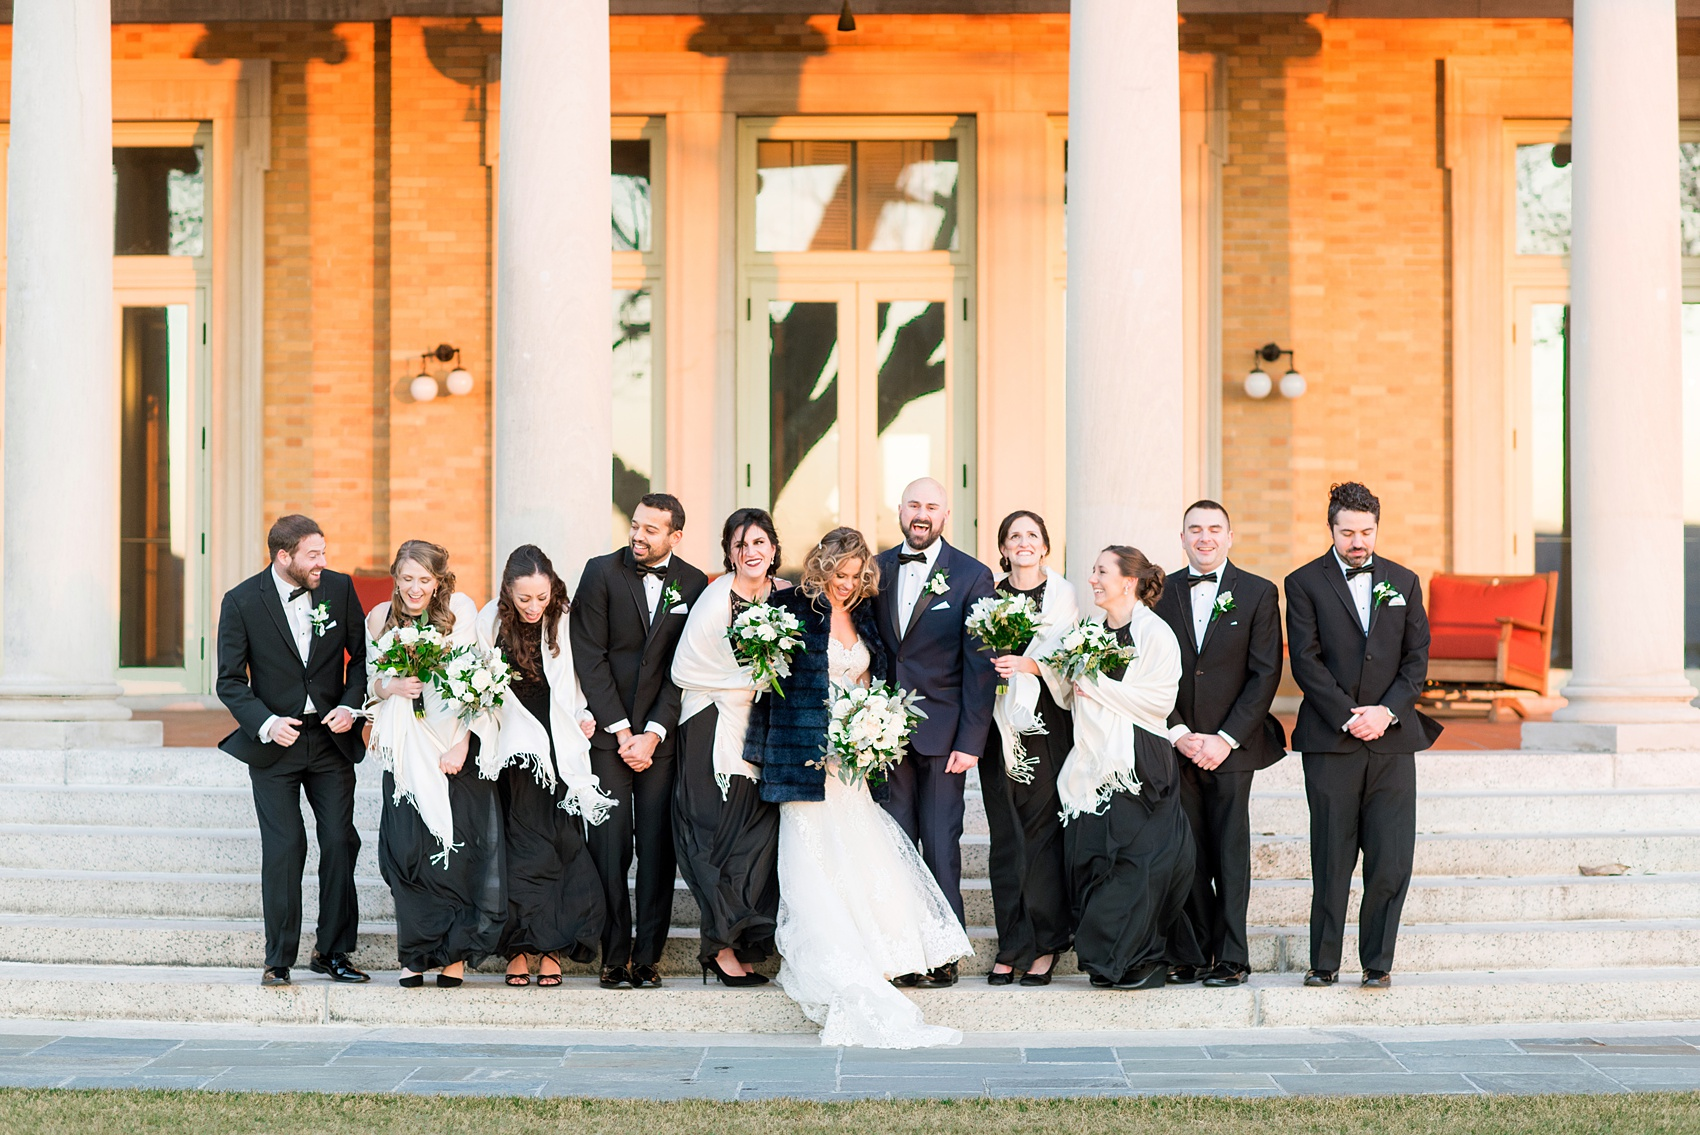 Wedding photos at Sleepy Hollow Country Club for a winter reception in January by Mikkel Paige Photography. The bridal party is pictured with white shawls, black lace gowns, and black tuxedos on the iconic stairs with columns of this New York venue.